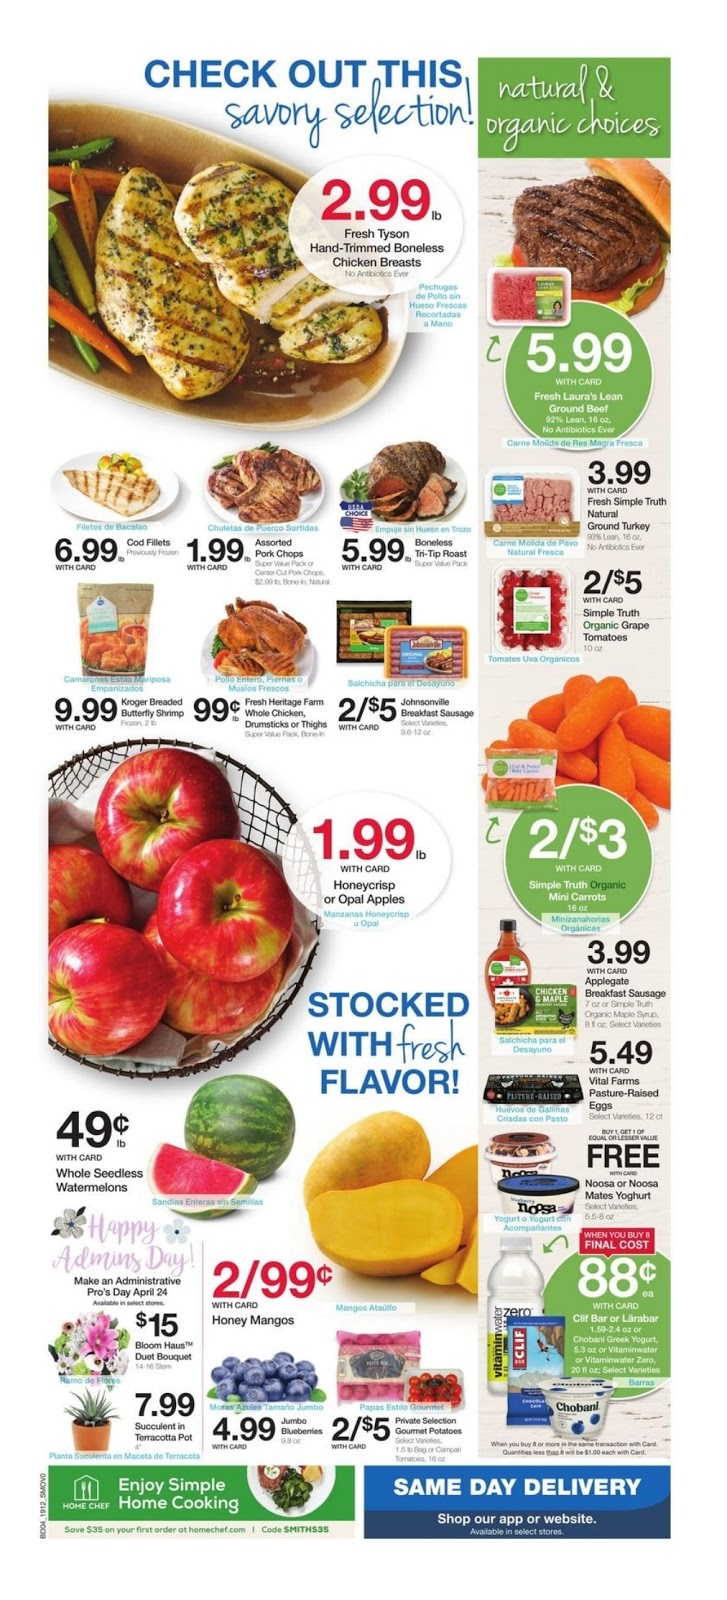 Smith's Weekly Ad April 24 - 30, 2019 - Coupons and Deals